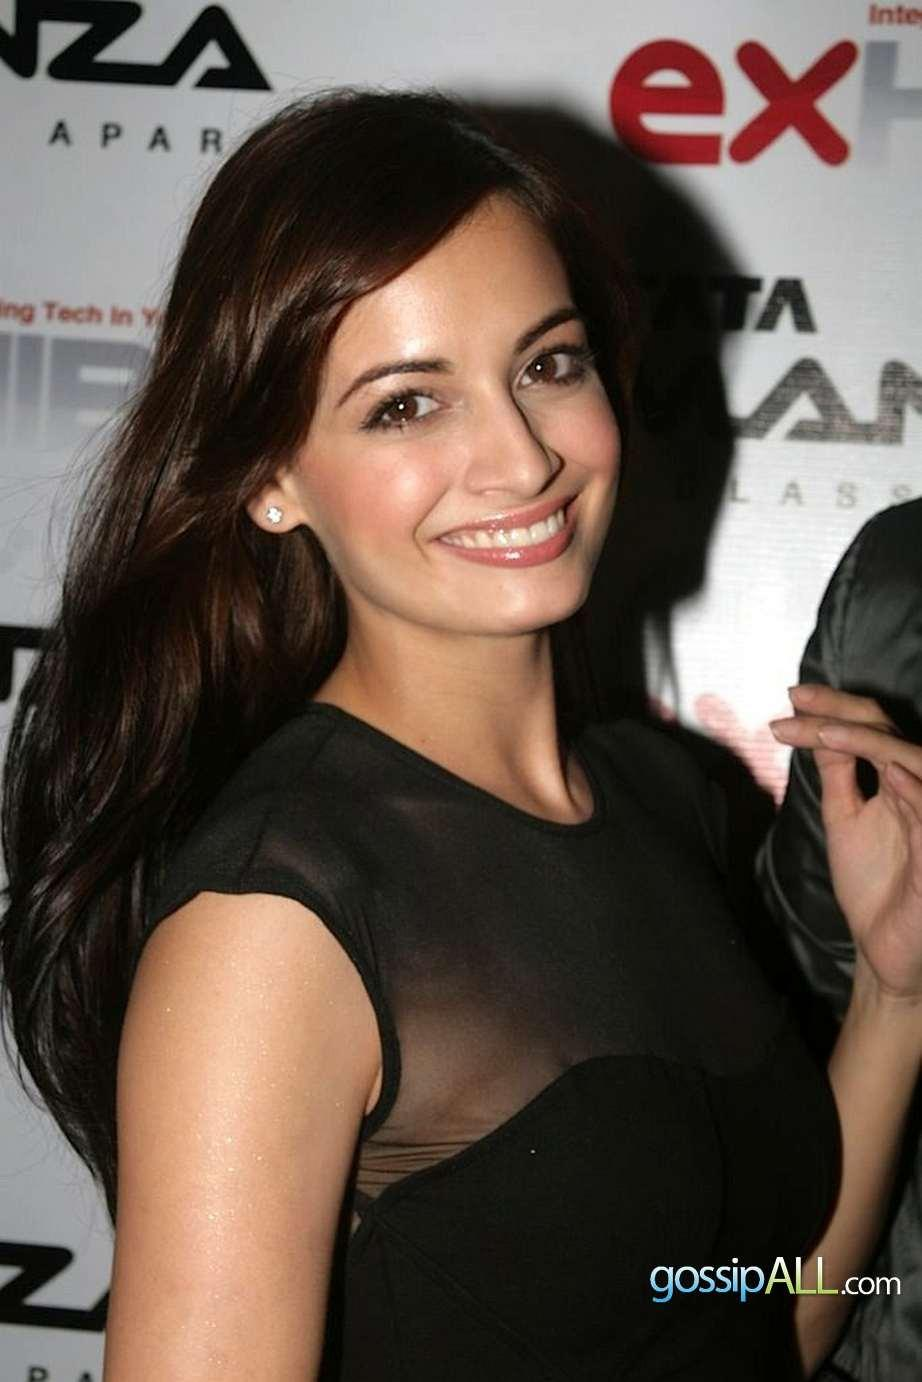 Dia Mirza Posing Nicely with great smile in black gown